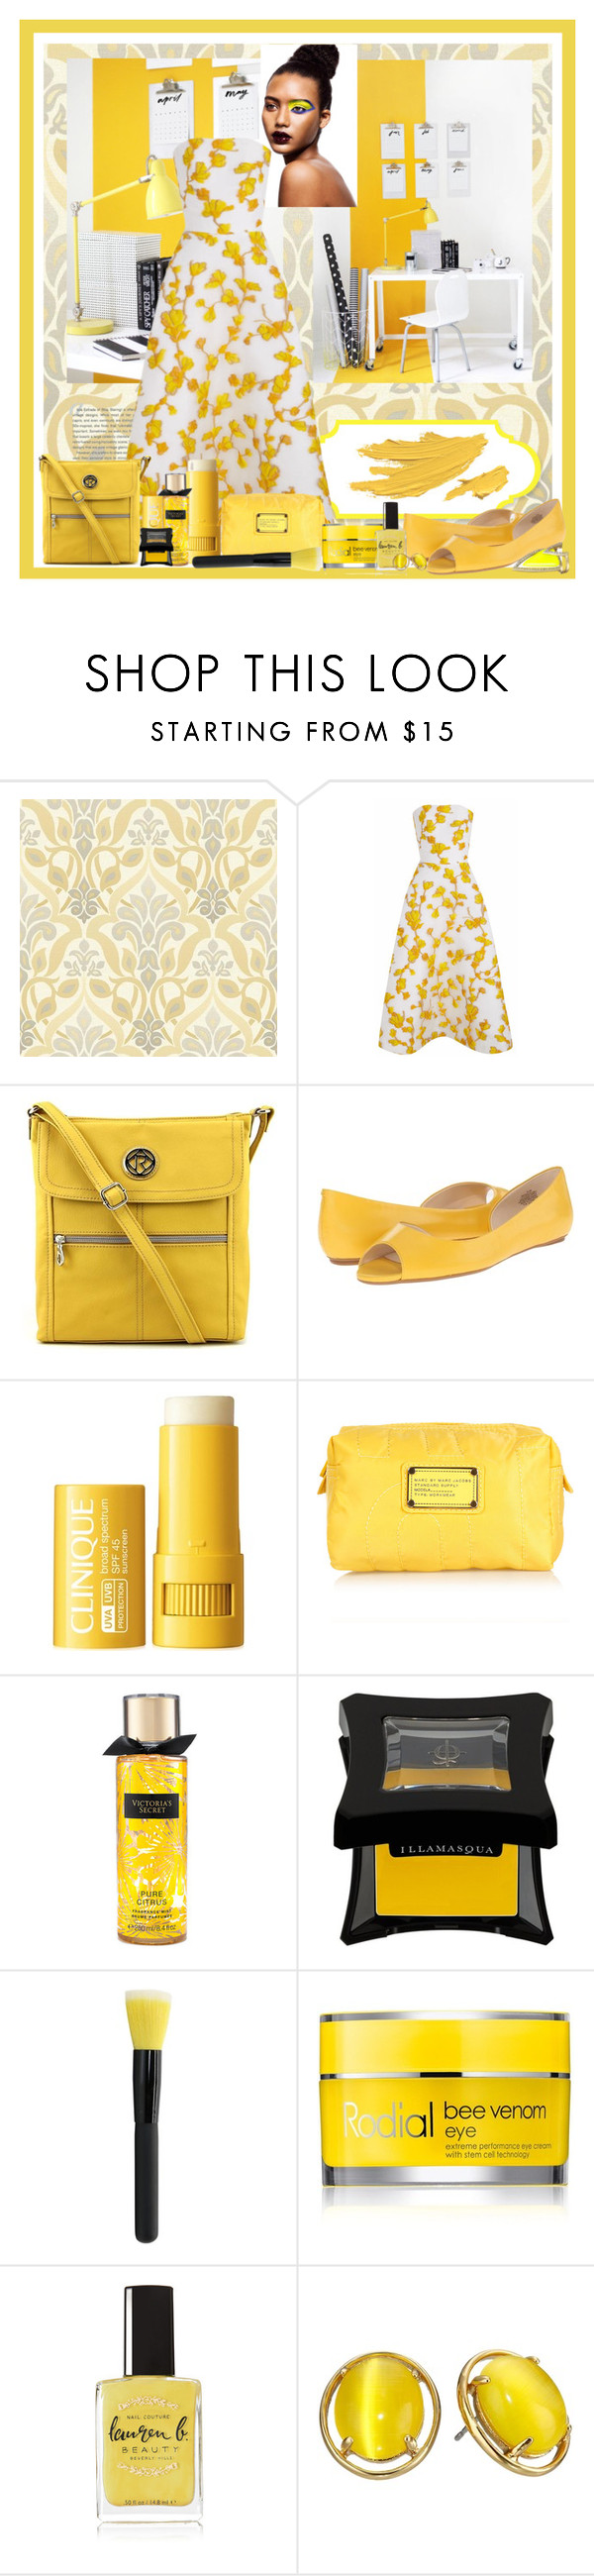 """Ring in the Sunshine"" by jakenpink ❤ liked on Polyvore featuring Stop Staring!, The 2nd Skin Co., Relic, Nine West, Clinique, Marc Jacobs, Illamasqua, Rodial, Lauren B. Beauty and Kate Spade"